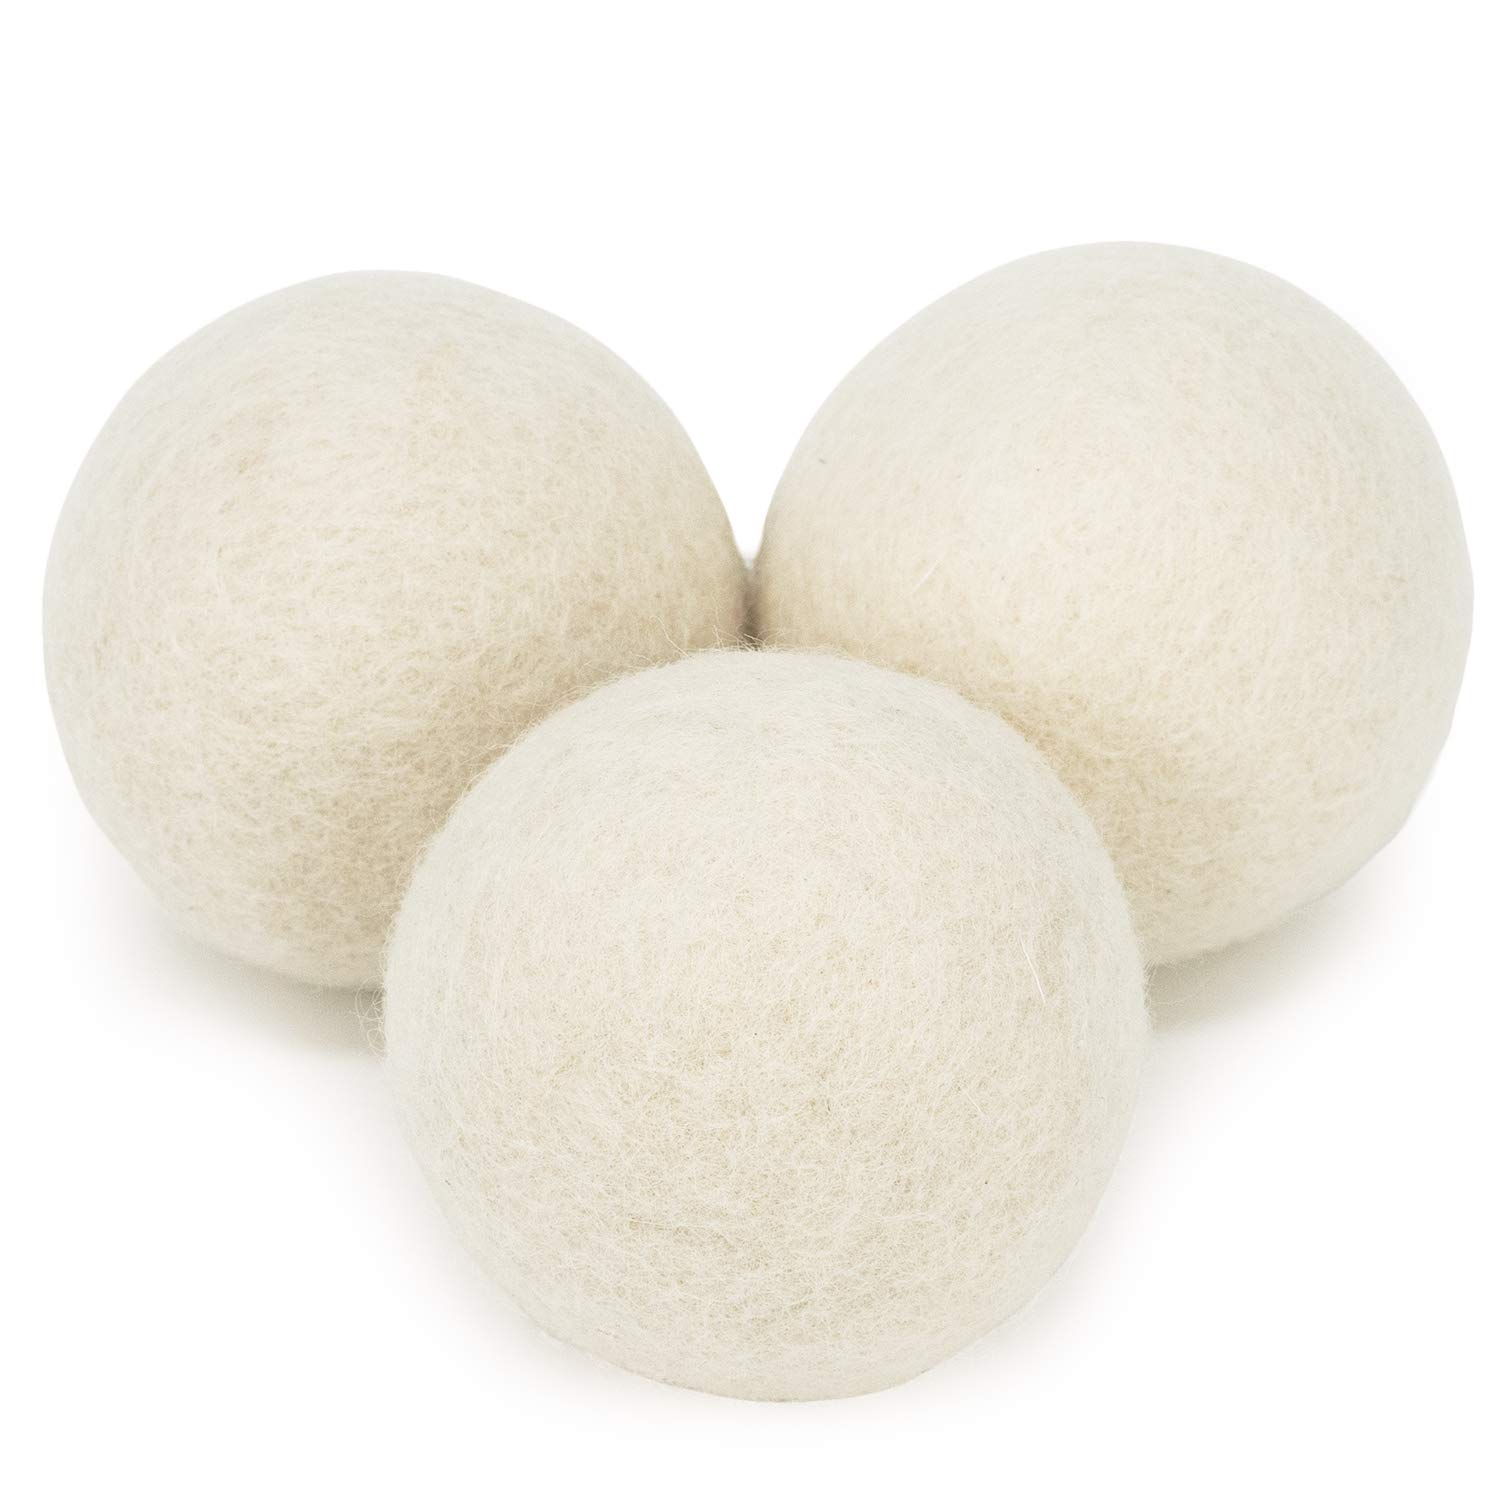 Cosy House Collection Wool Dryer Balls - Natural Fabric Softener Reusable & Eco-Friendly - Reduce Wrinkles, Lint & Drying Times - Makes Laundry Snuggle Soft (3 Pack) Set